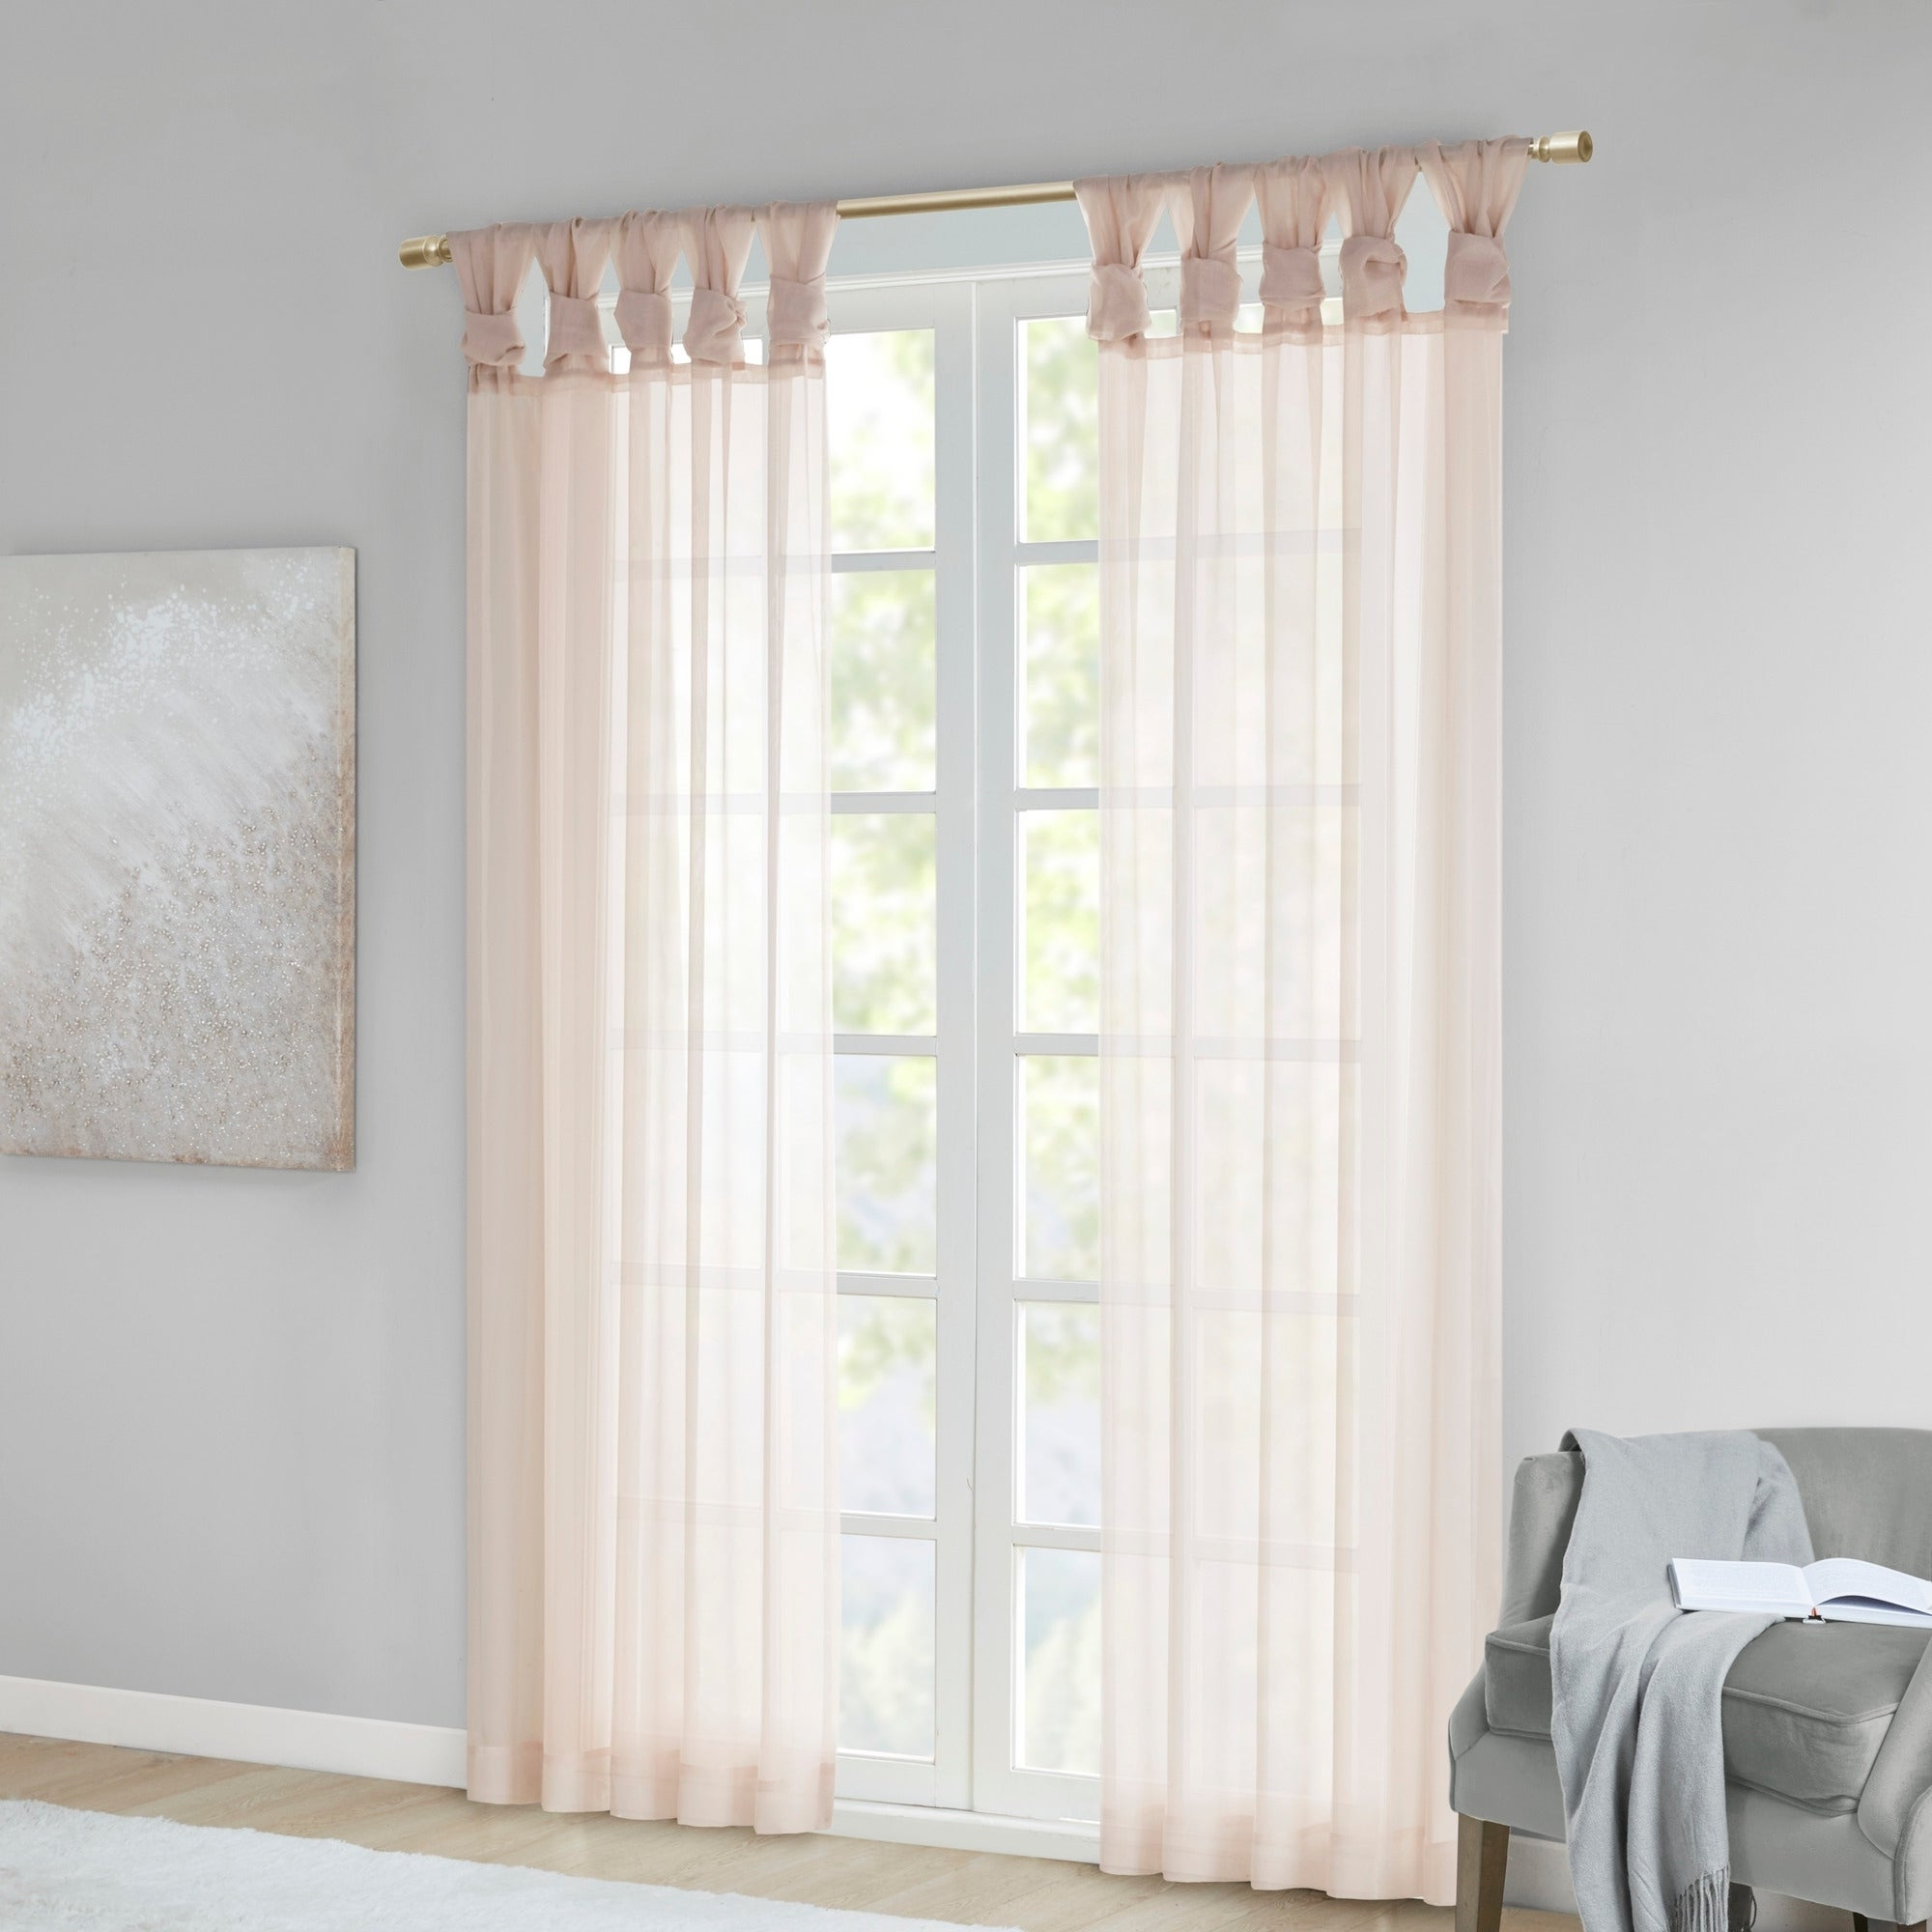 Trendy Elowen White Twist Tab Voile Sheer Curtain Panel Pairs Intended For Madison Park Elowen White Twist Tab Voile Sheer Curtain Panel Pair (View 7 of 20)